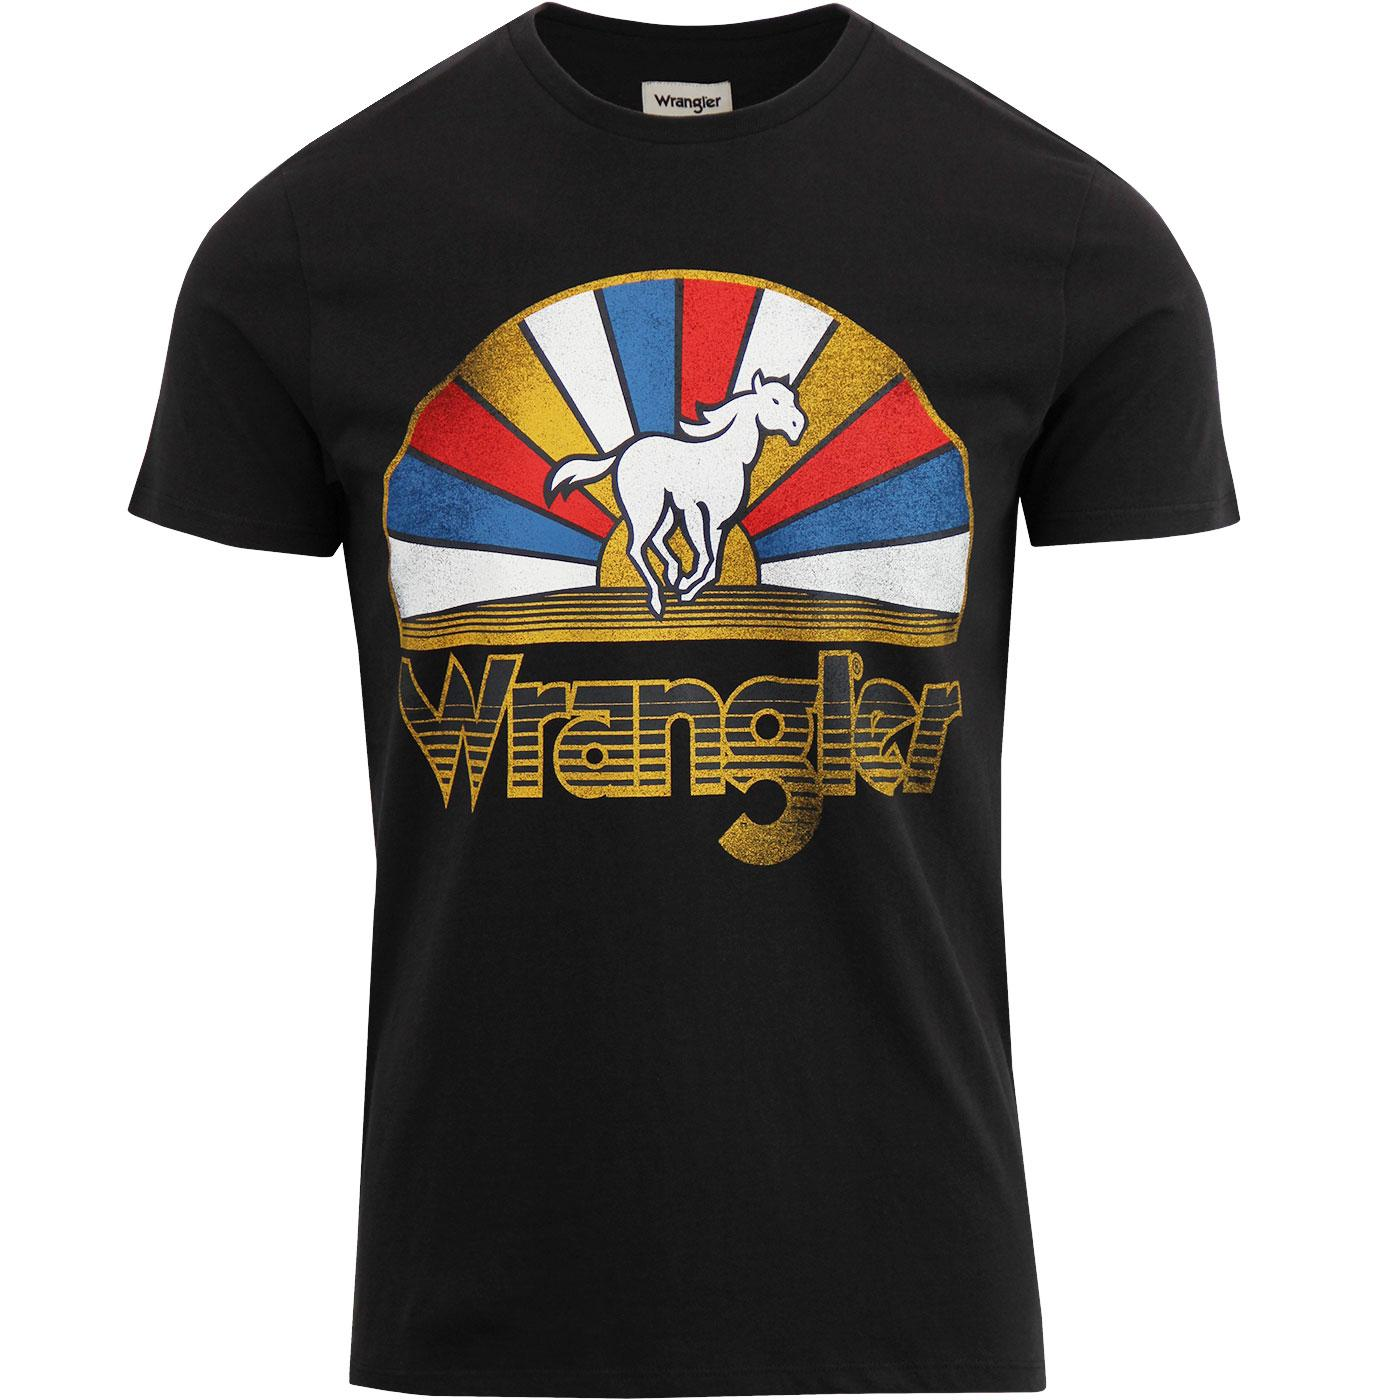 WRANGLER Retro 70's Horse Logo Tee - Faded Black